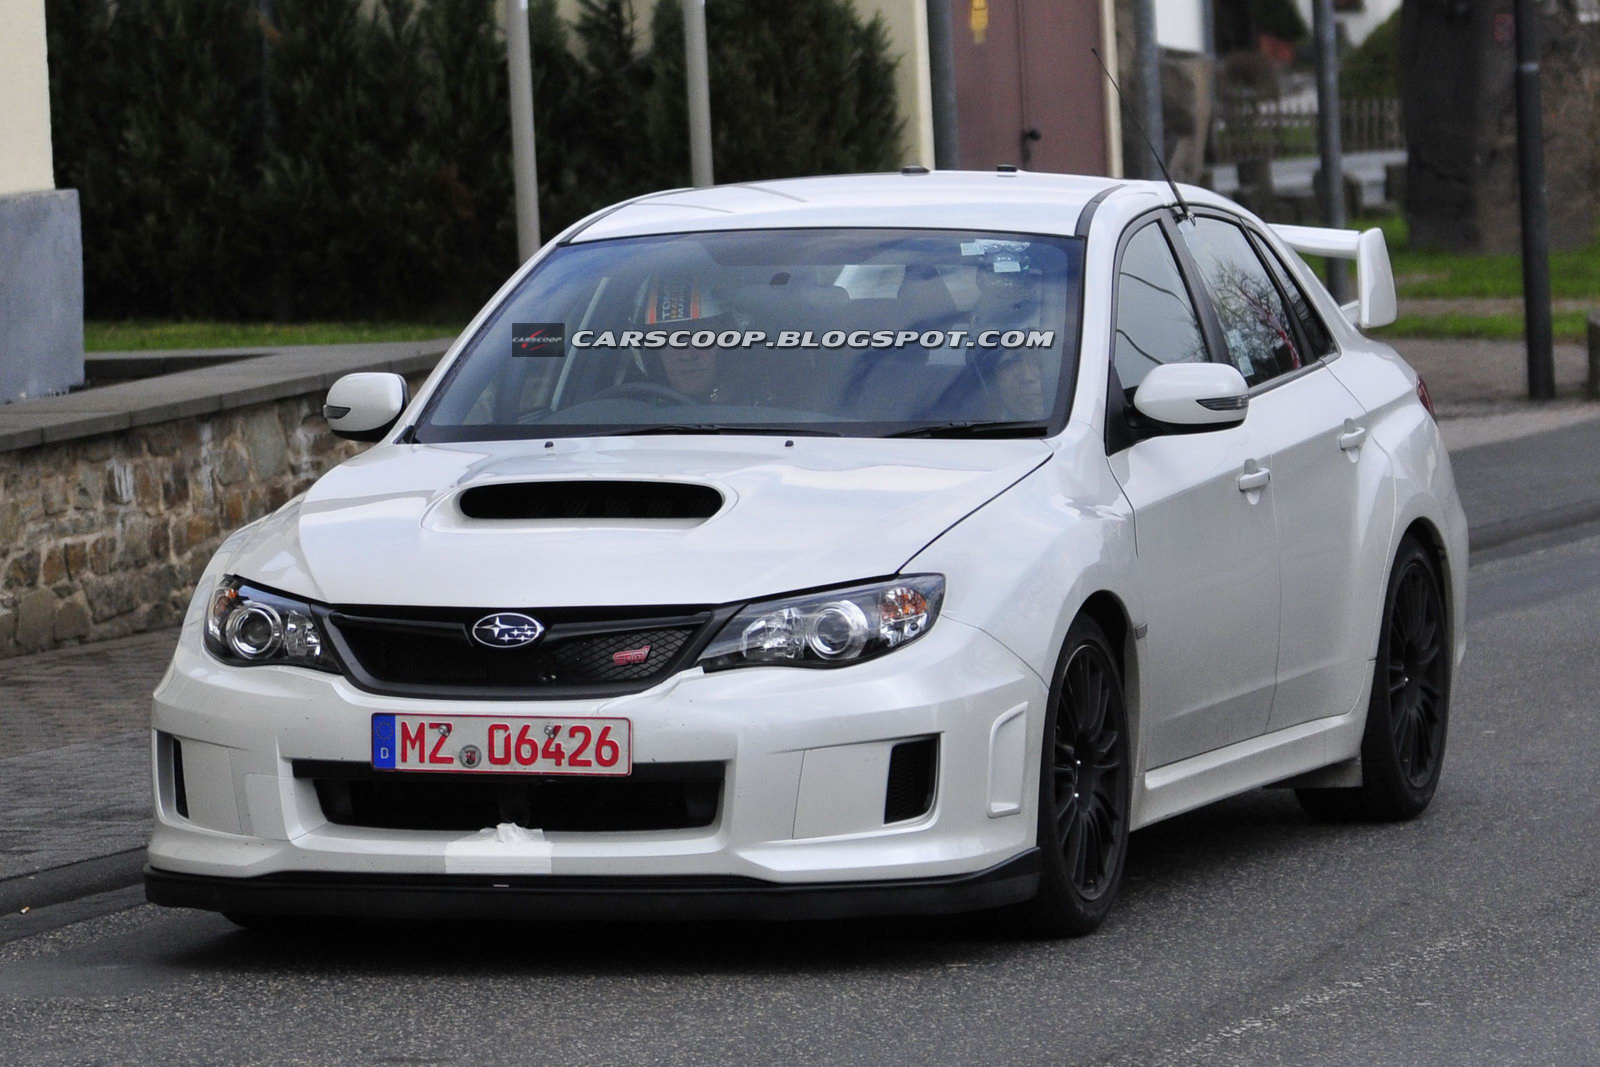 pics of a fabled spec C version of the new wide body 2011 Subie STI